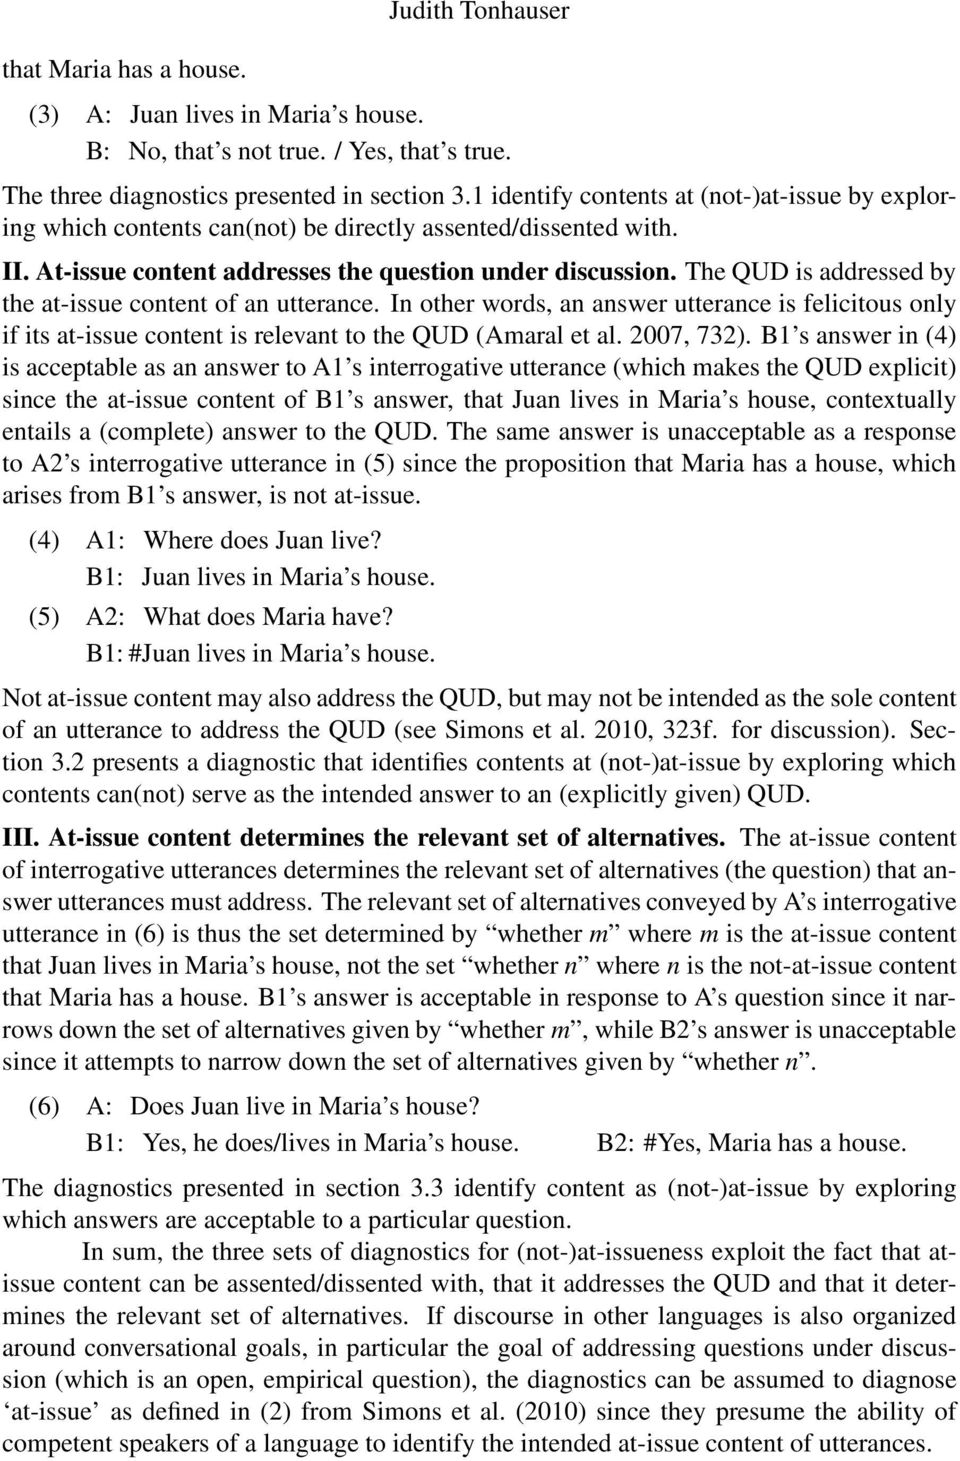 The QUD is addressed by the at-issue content of an utterance. In other words, an answer utterance is felicitous only if its at-issue content is relevant to the QUD (Amaral et al. 2007, 732).